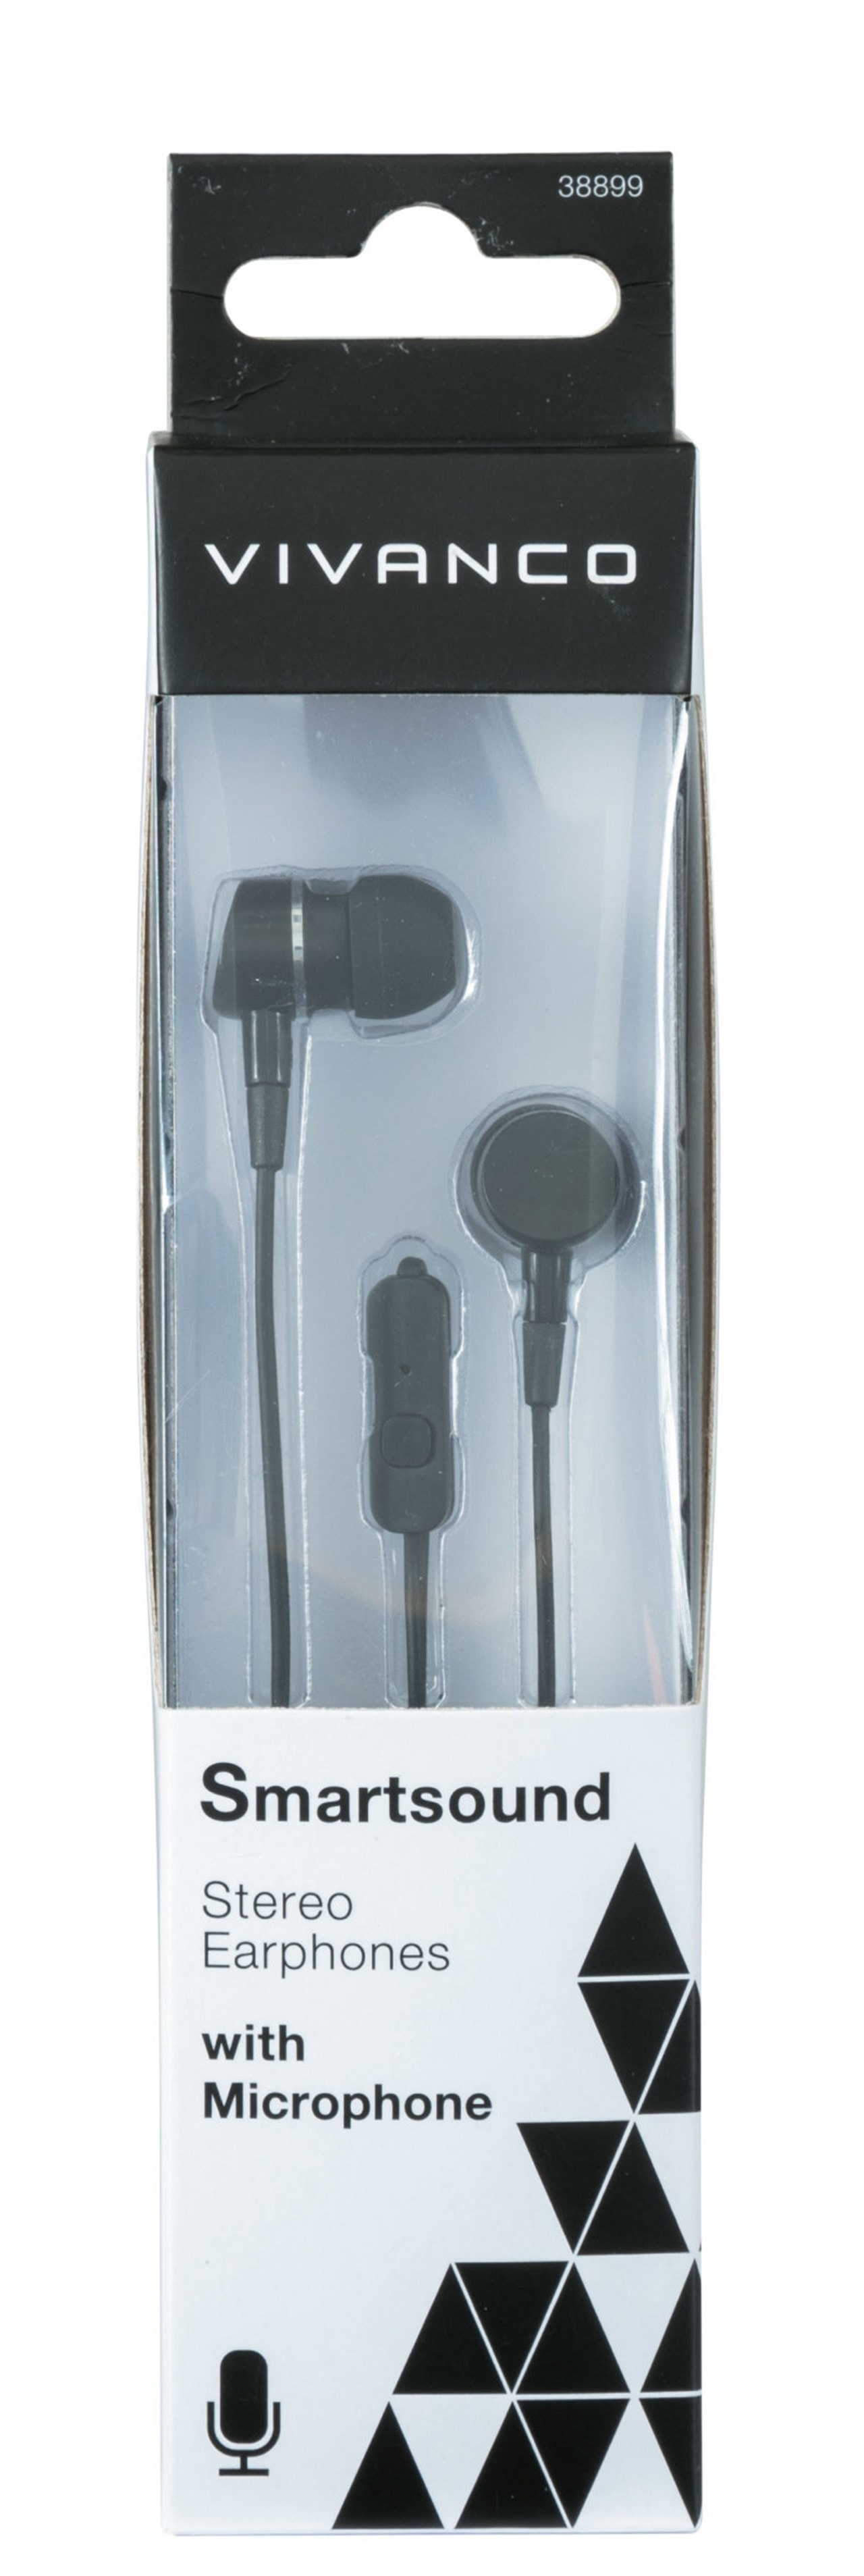 Vivanco Smartsound Black Earphones W/Mic - 2